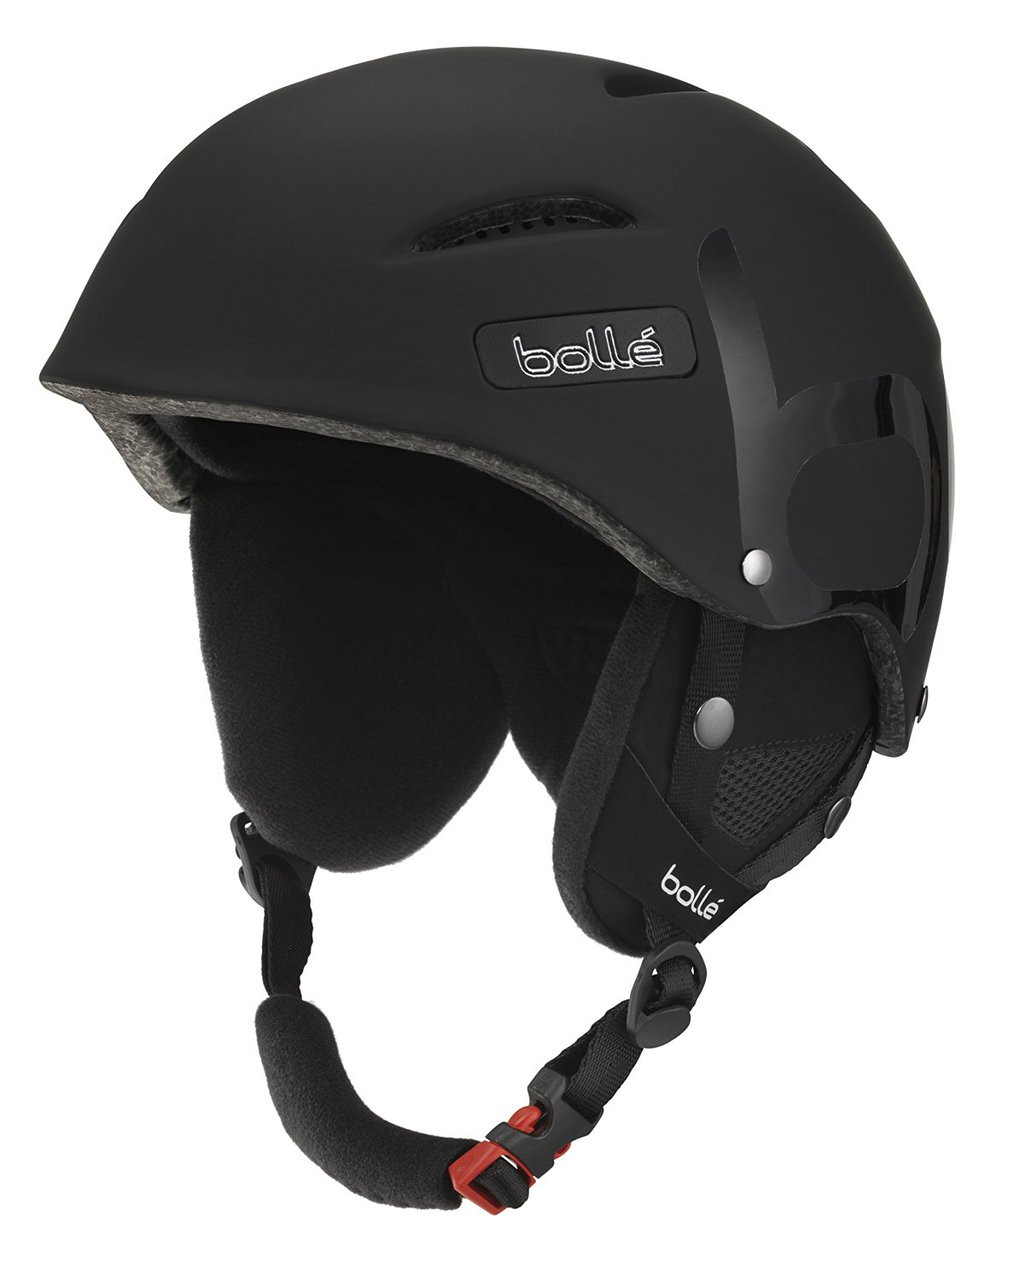 lightweight ski and snowboard helmet